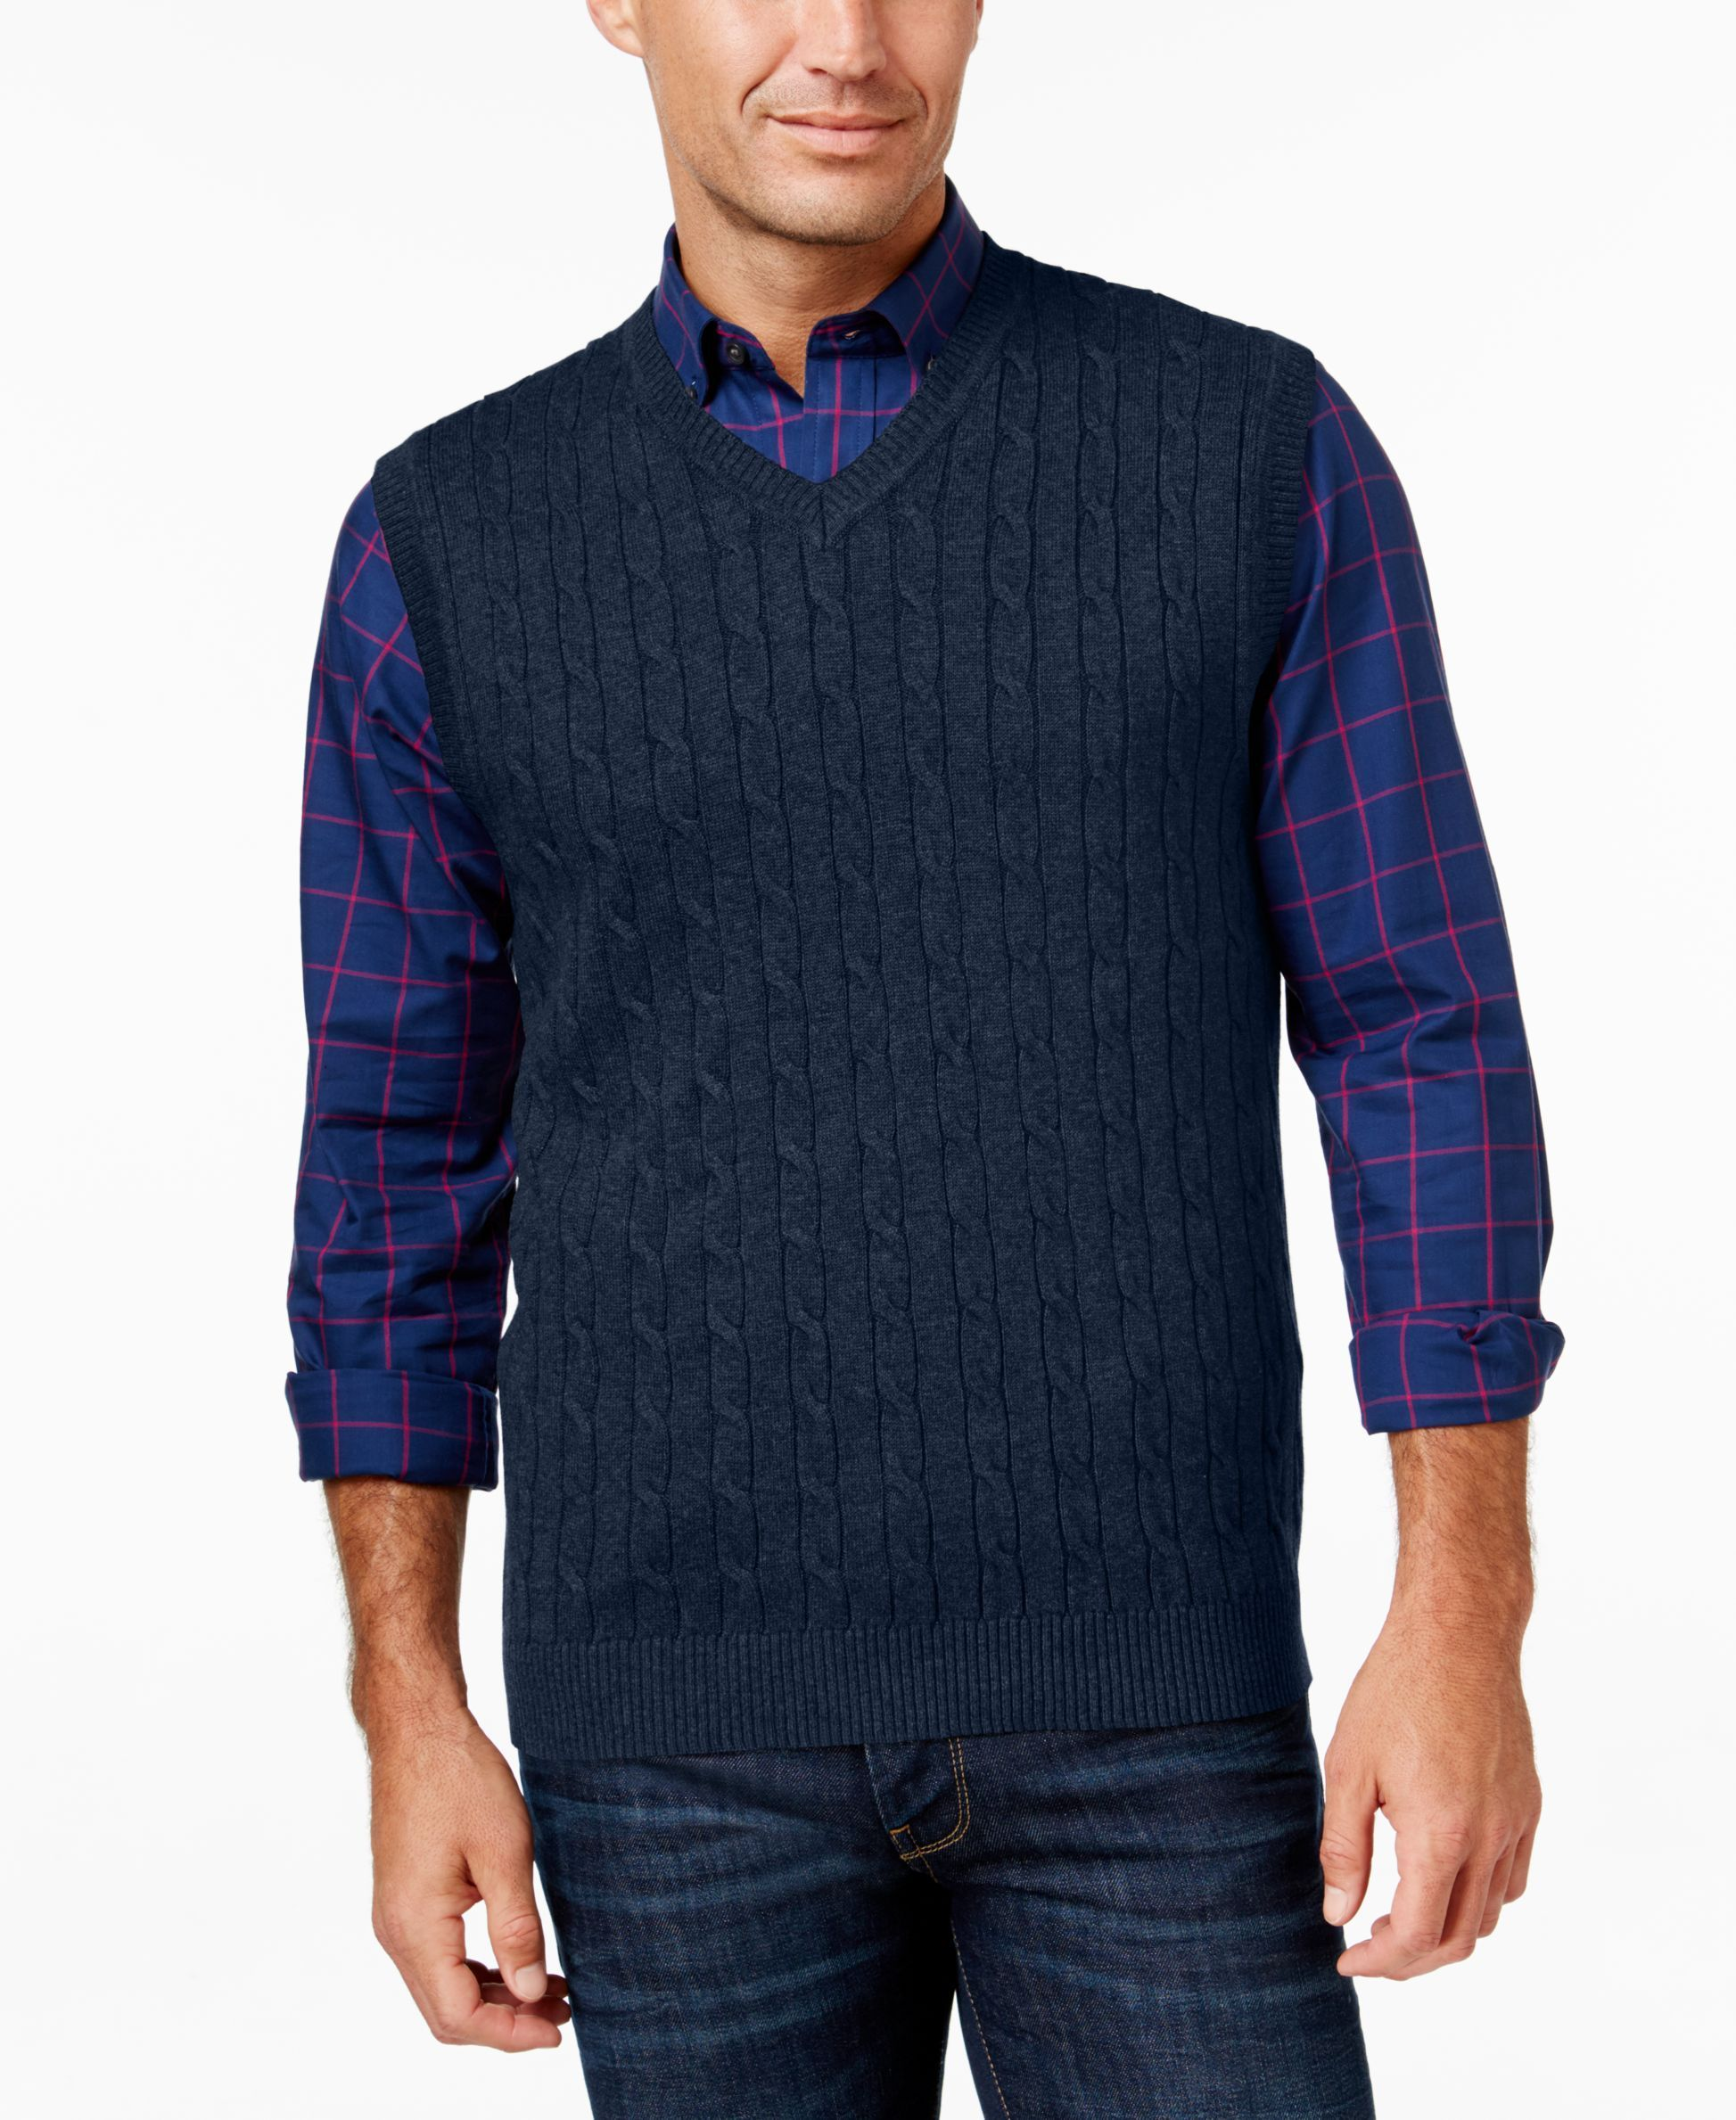 Club Room Men's Cable-Knit Sweater Vest, Only at Macy's ...